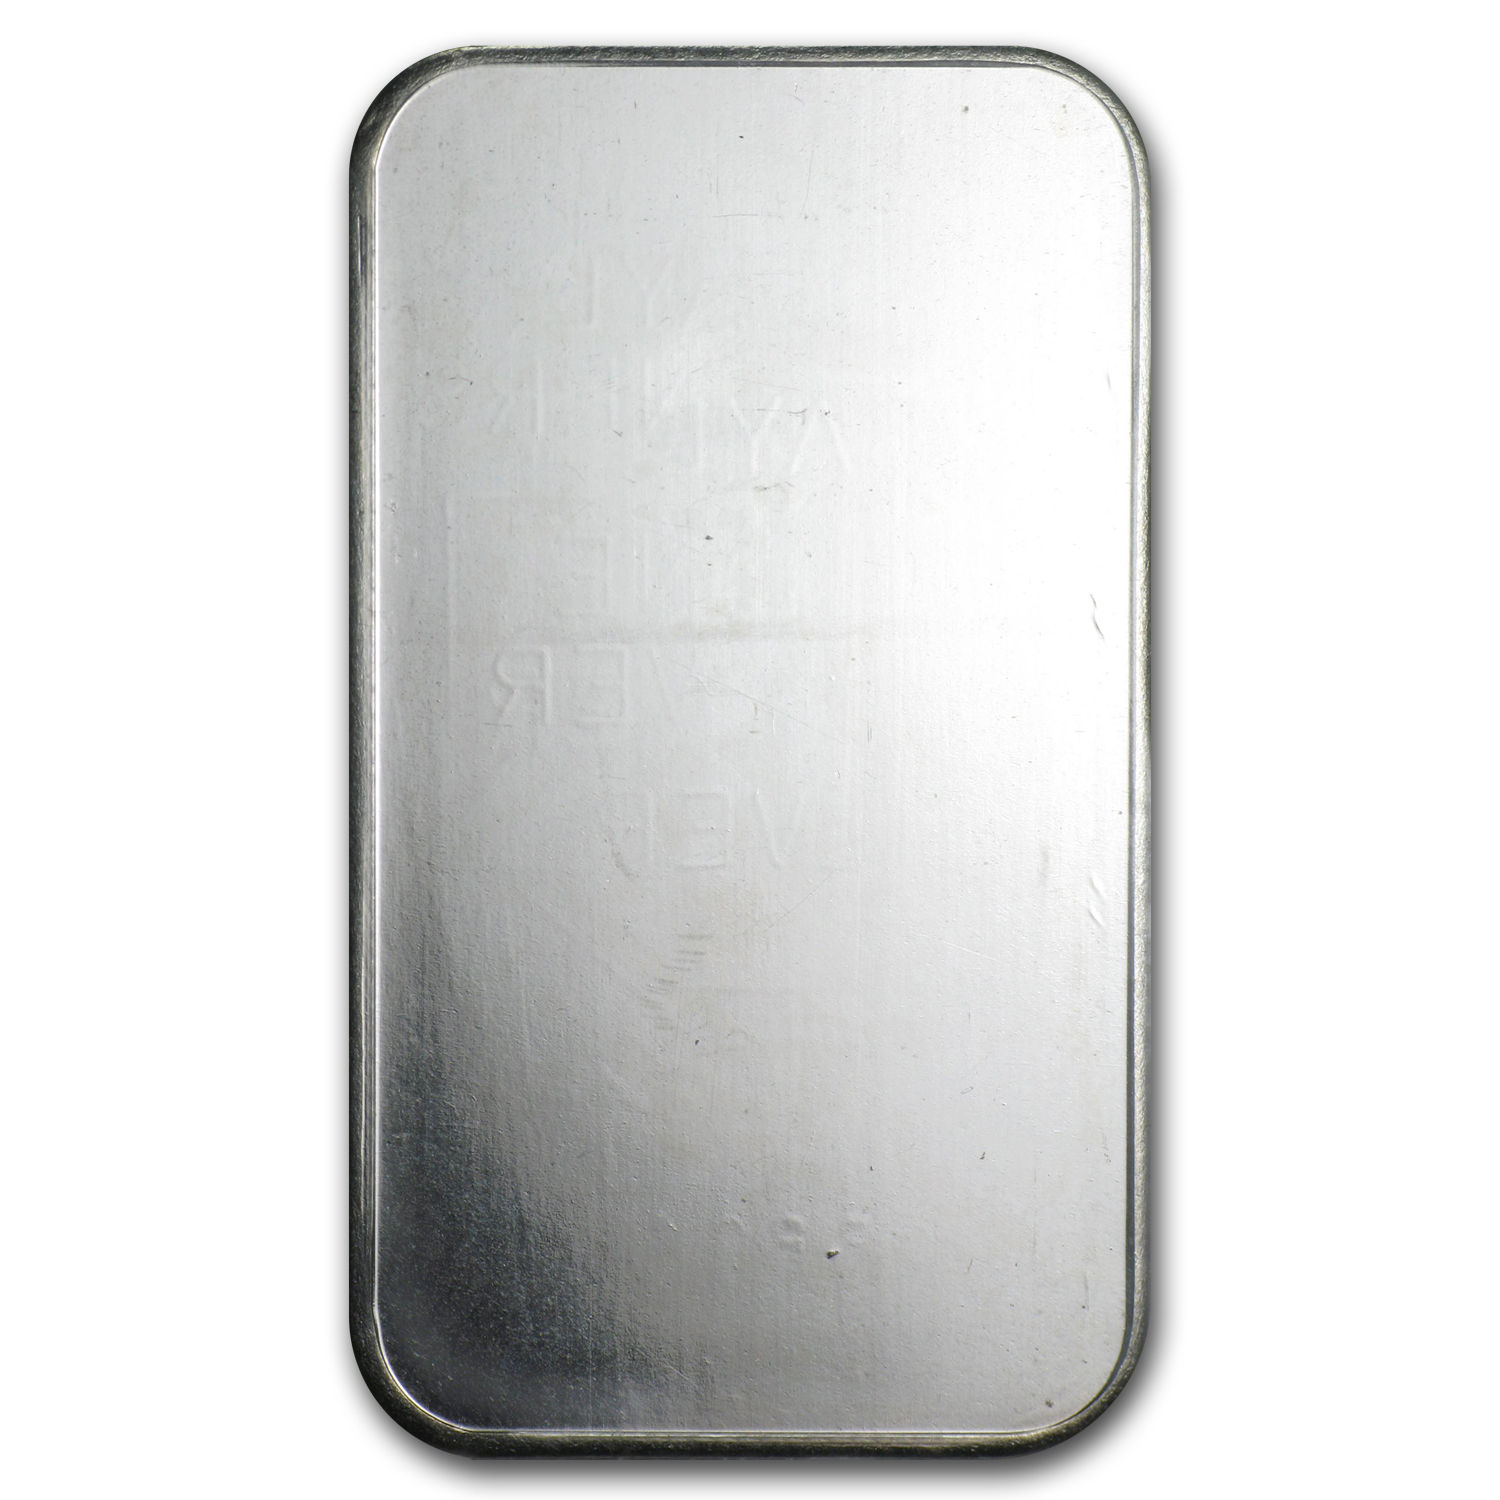 1 oz Silver Bar - Johnson Matthey (Sealed/Plain Back)